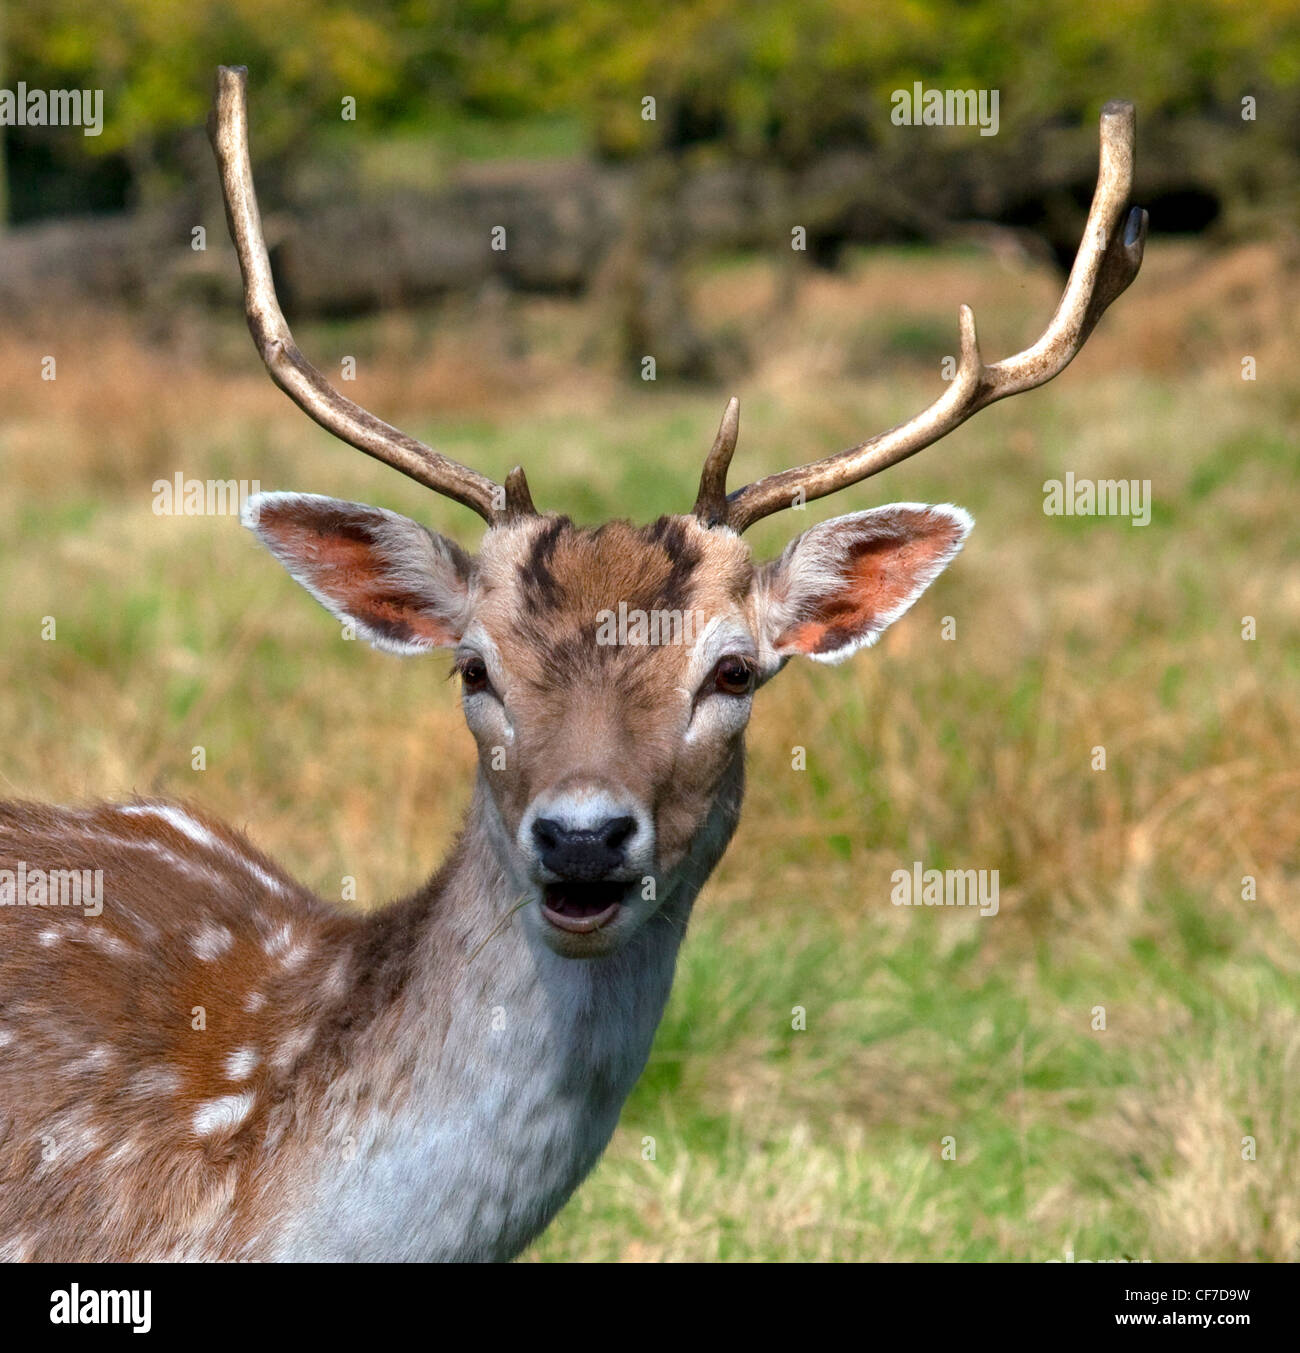 Fallow deer at Dunham Massey, an NT (National Trust) property near Bowden, Altrincham, Trafford, Manchester , Cheshire, - Stock Image